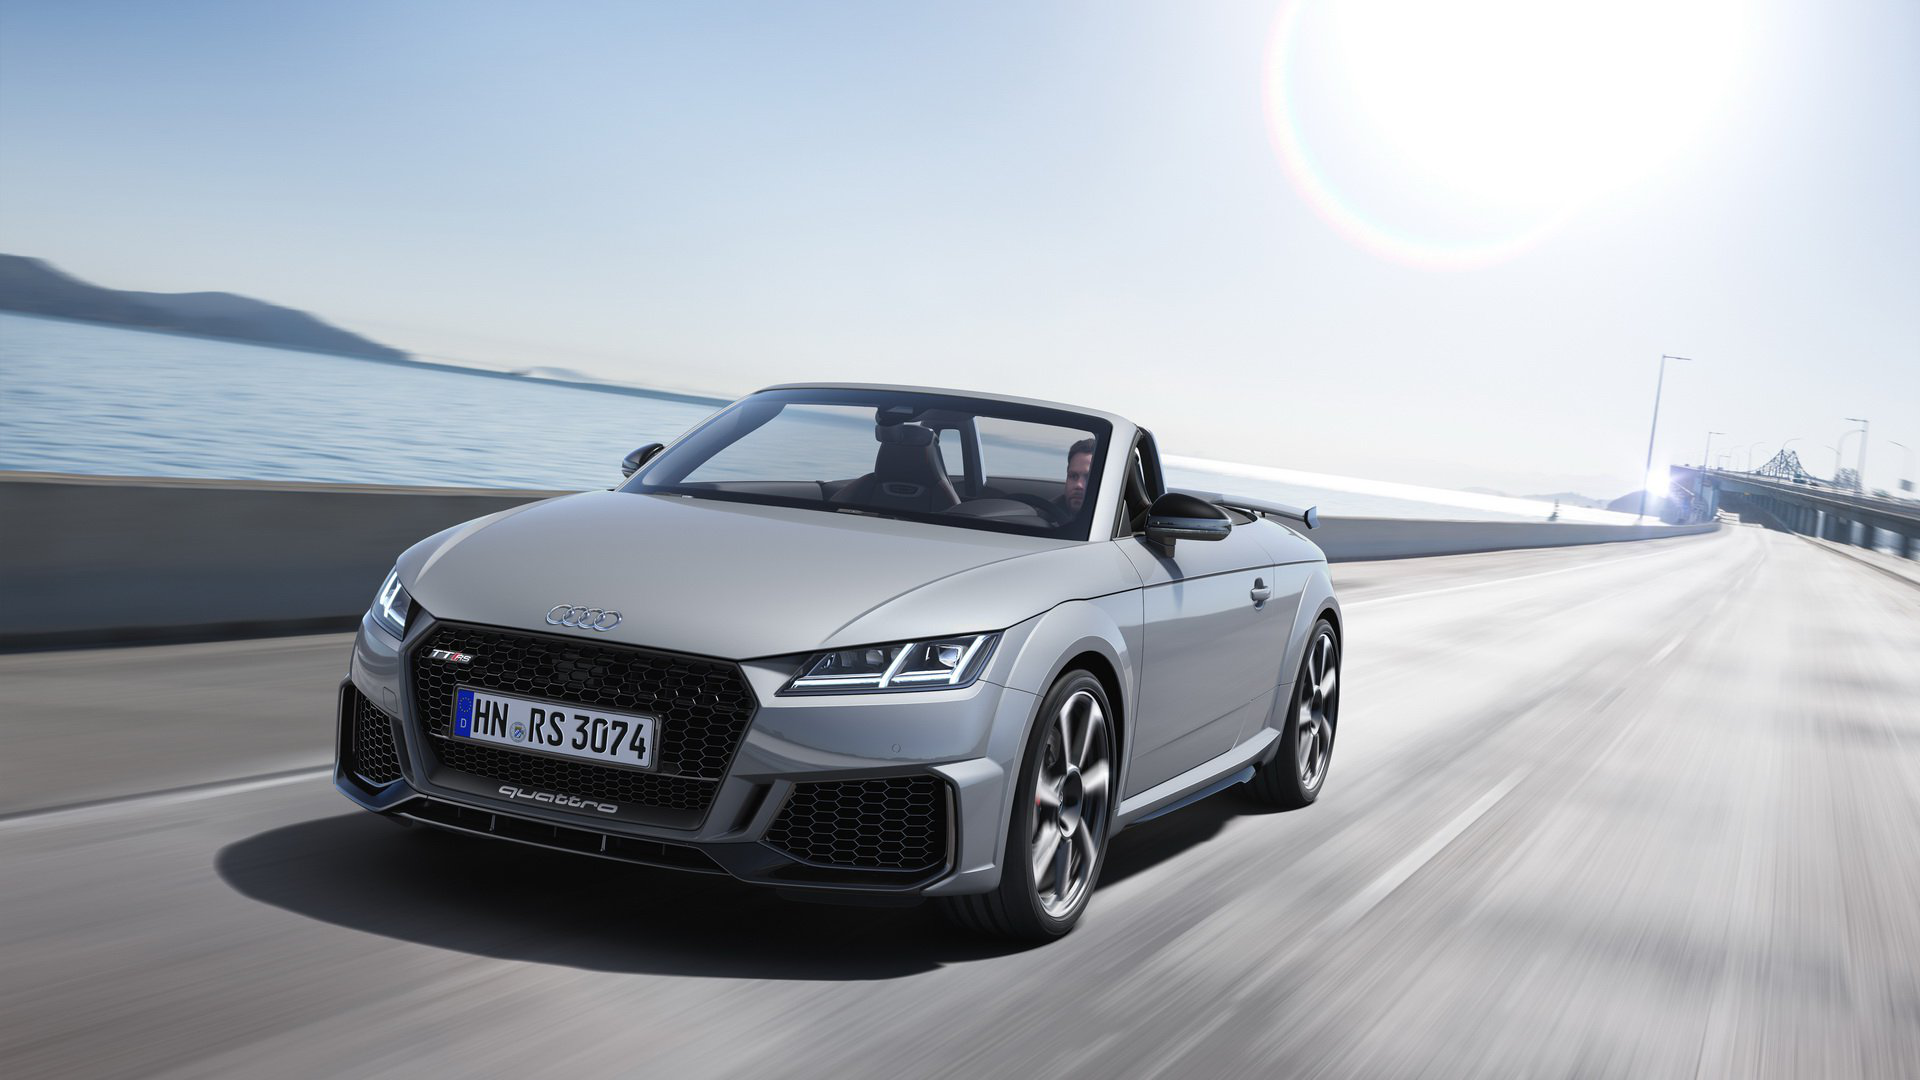 2020 Audi Tt Rs 2 5 Liter Turbo Five With 400ps Carmojo The Facelifted Tt Rs Coupe And Roadster Will Arrive At Deal Audi Tt Audi Tt Rs Audi Tt Roadster